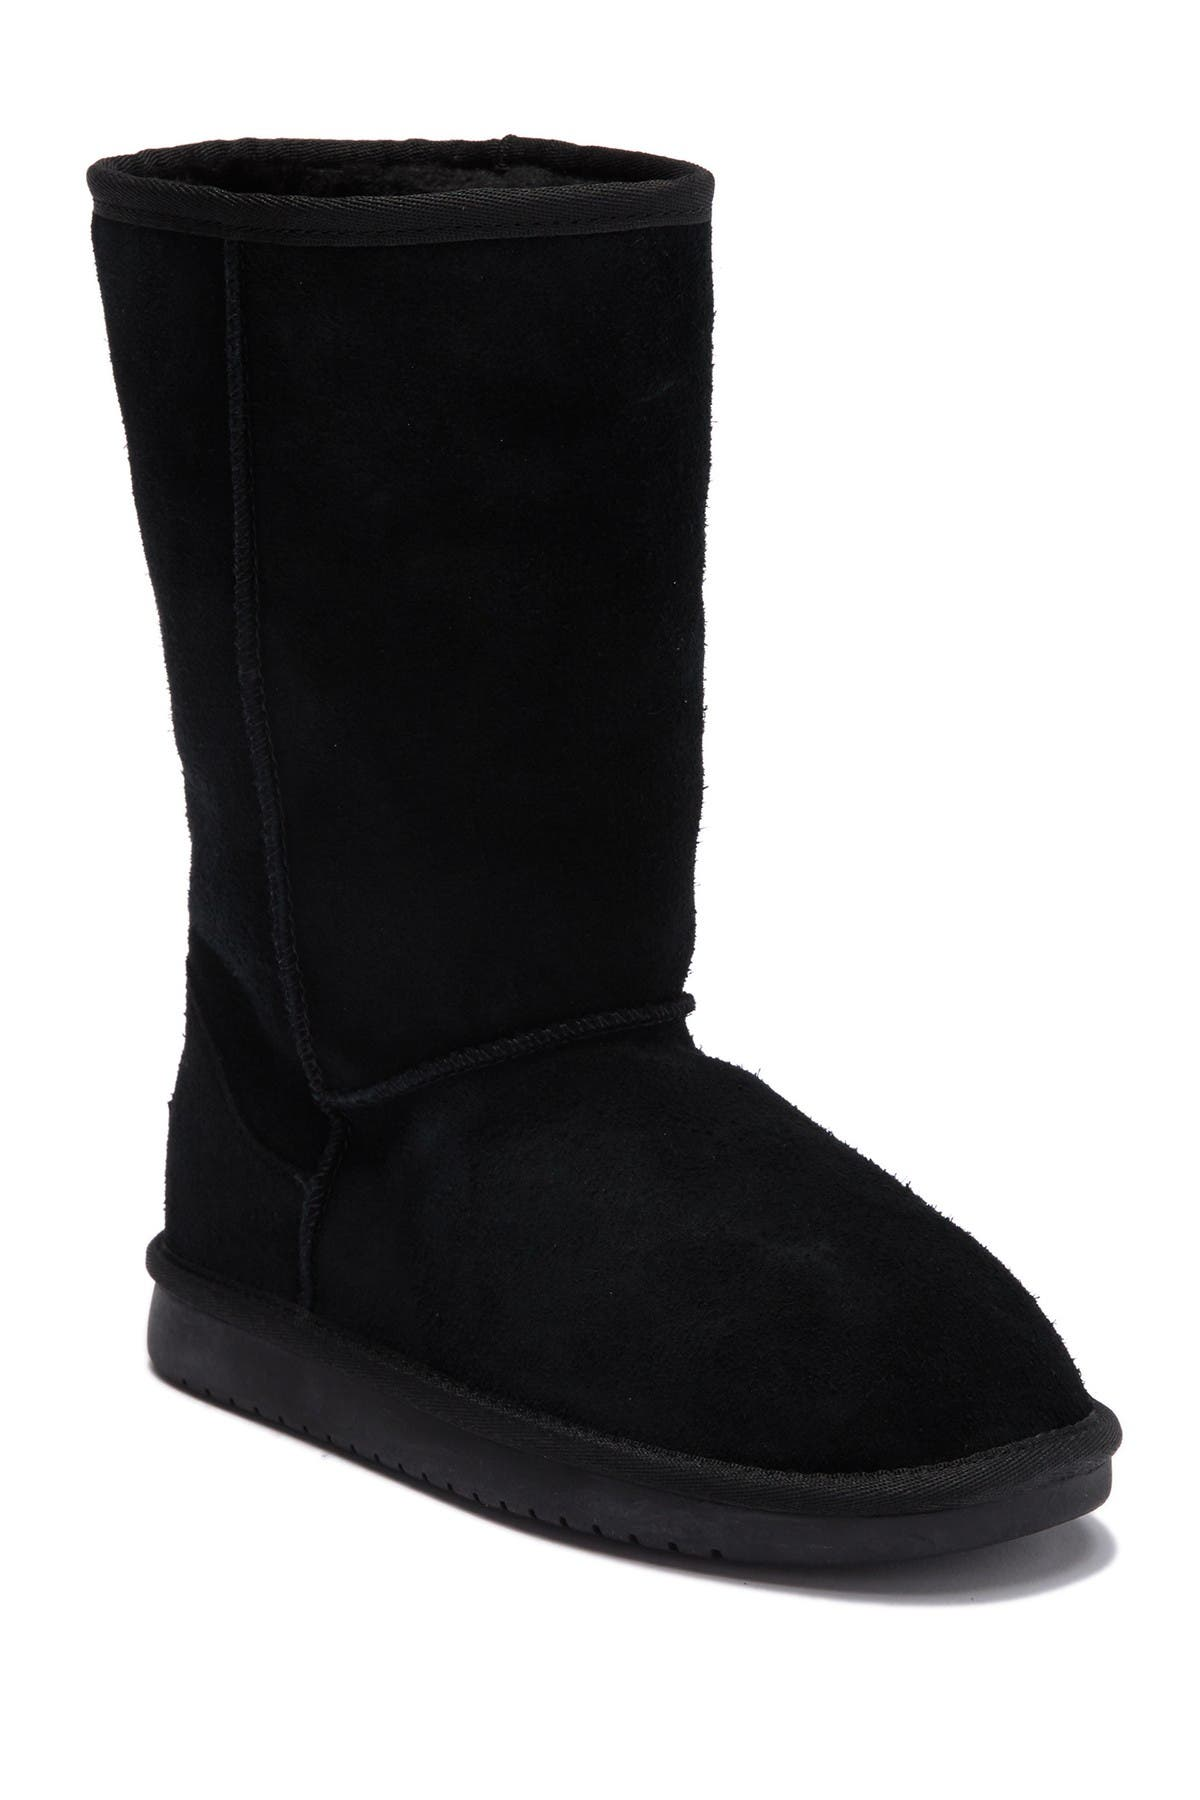 Image of KOOLABURRA BY UGG Koola Faux Fur Lined Suede Tall Boot